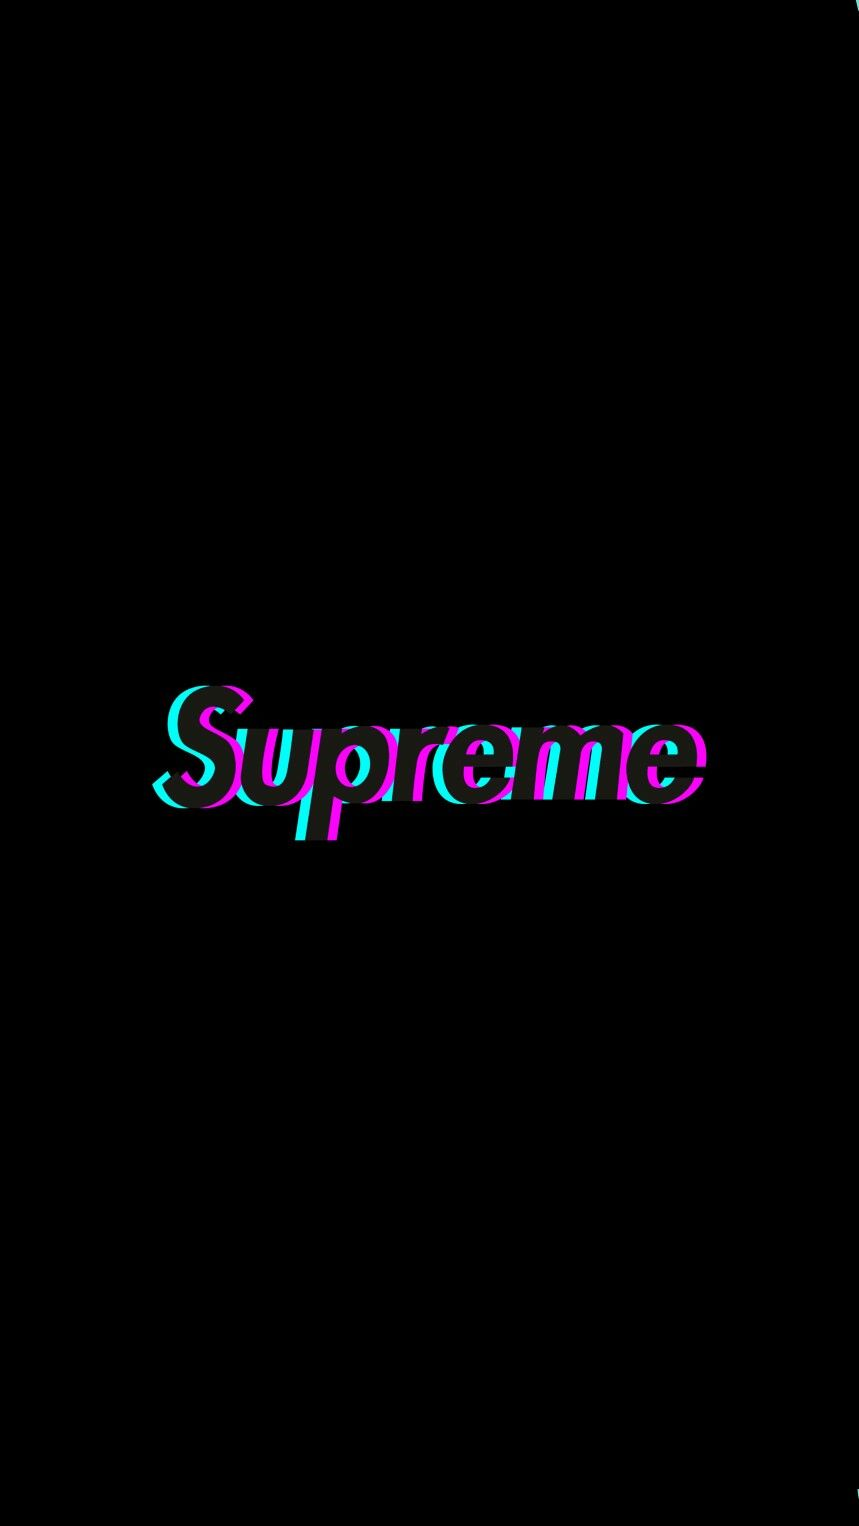 Hypebeast Wallpapers nixxboi Hypebeast Wallpapers in 2019 859x1526